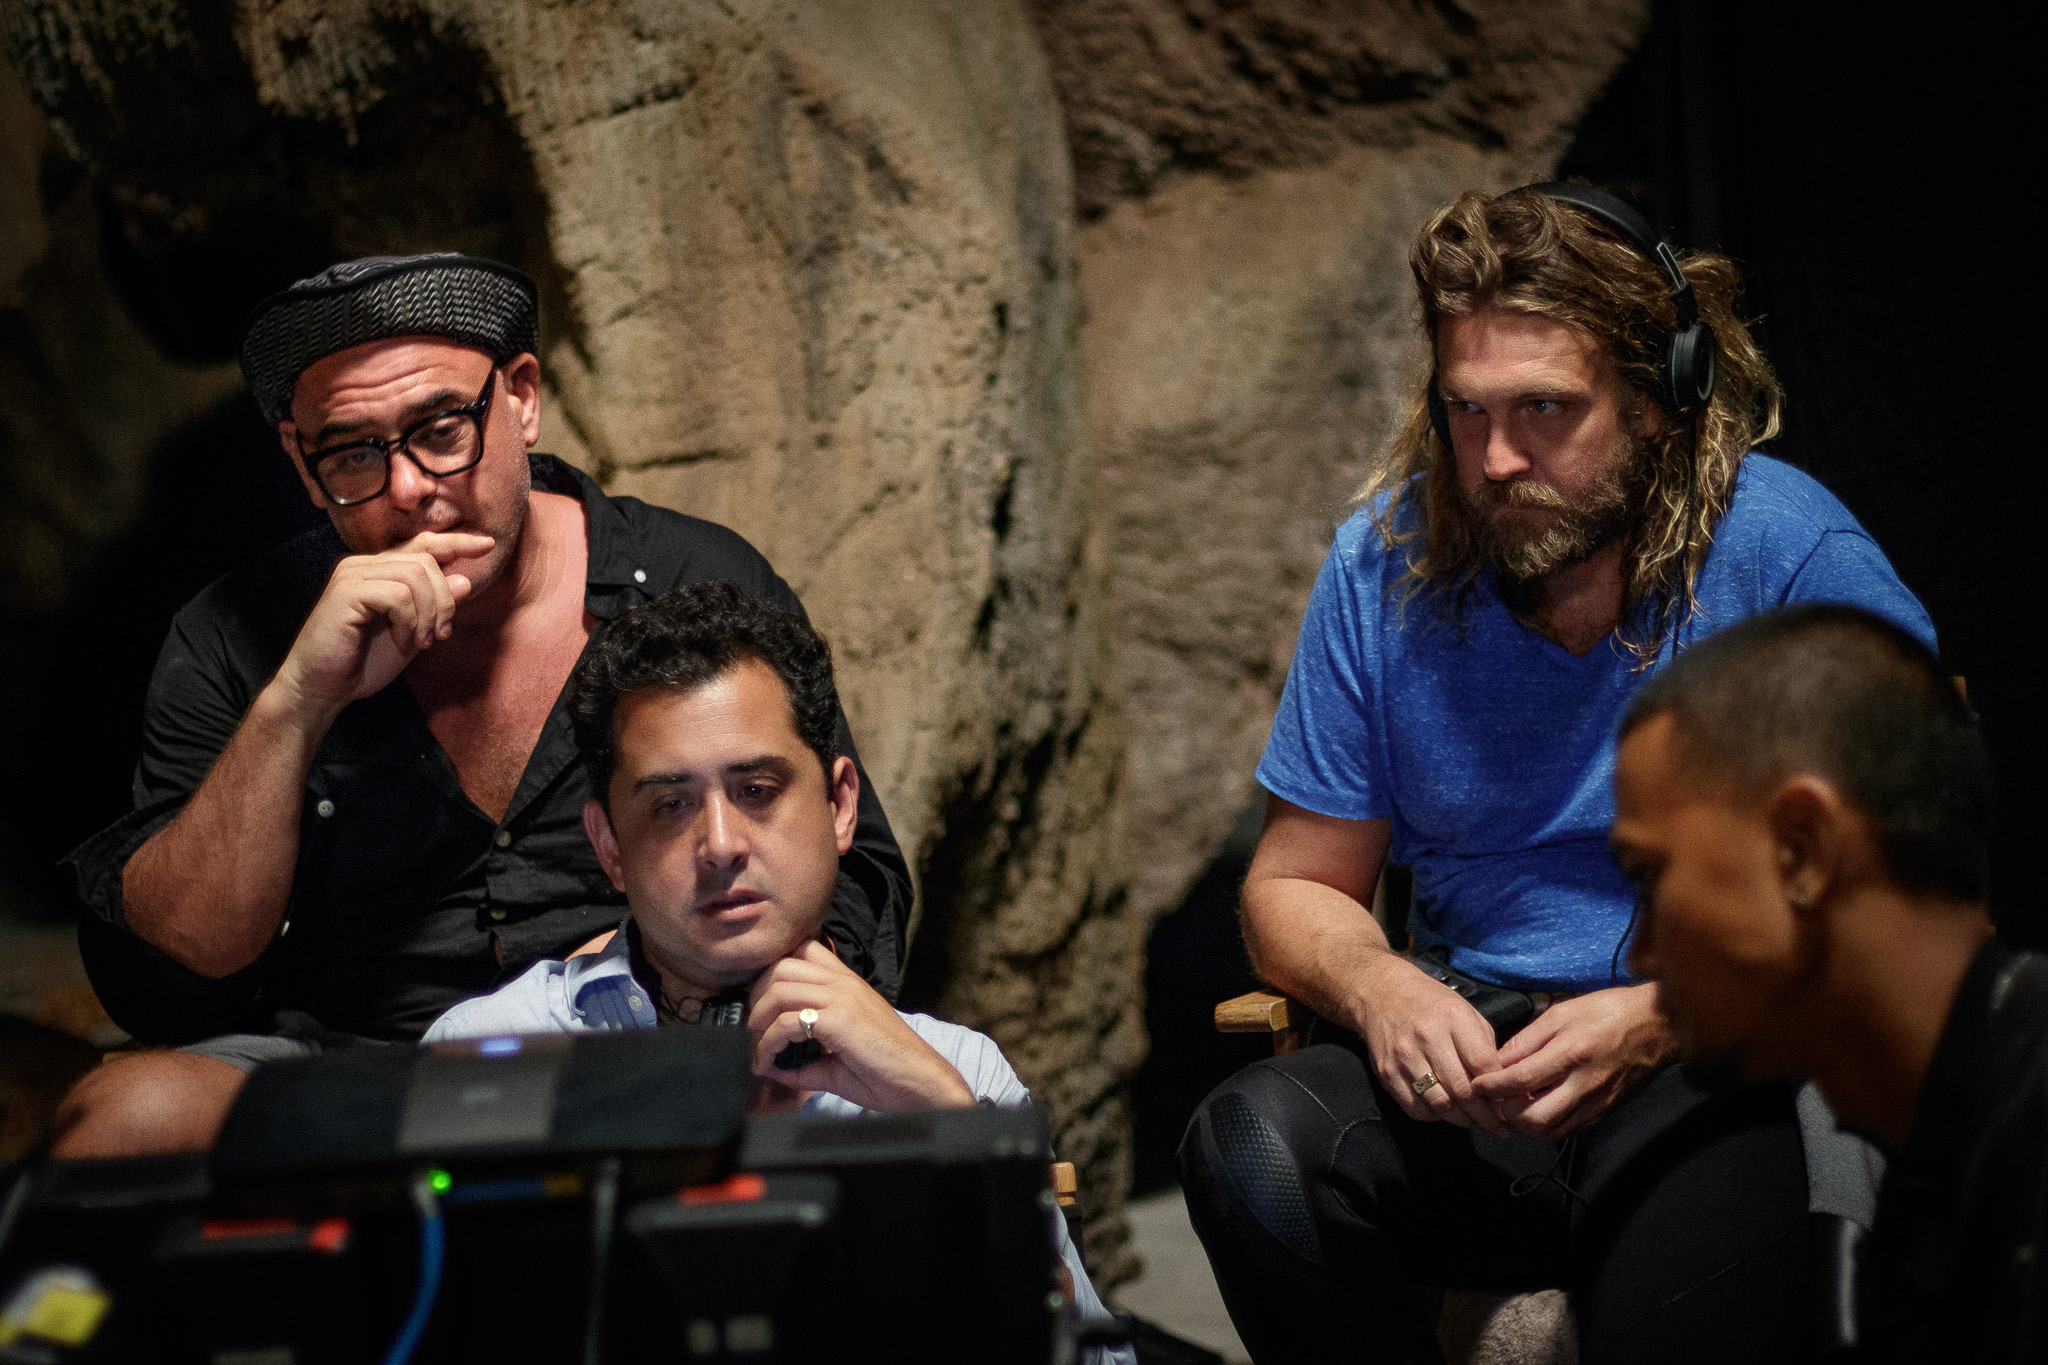 Executive Producer Desmond O'Neill and Writer/director Tom Waller on the set of 'THE CAVE' with cave rescue diver Erik Brown on location in Thailand. Photo by Fredrik Divall (c) De Warrenne Pictures Co. Ltd. All Rights Reserved.